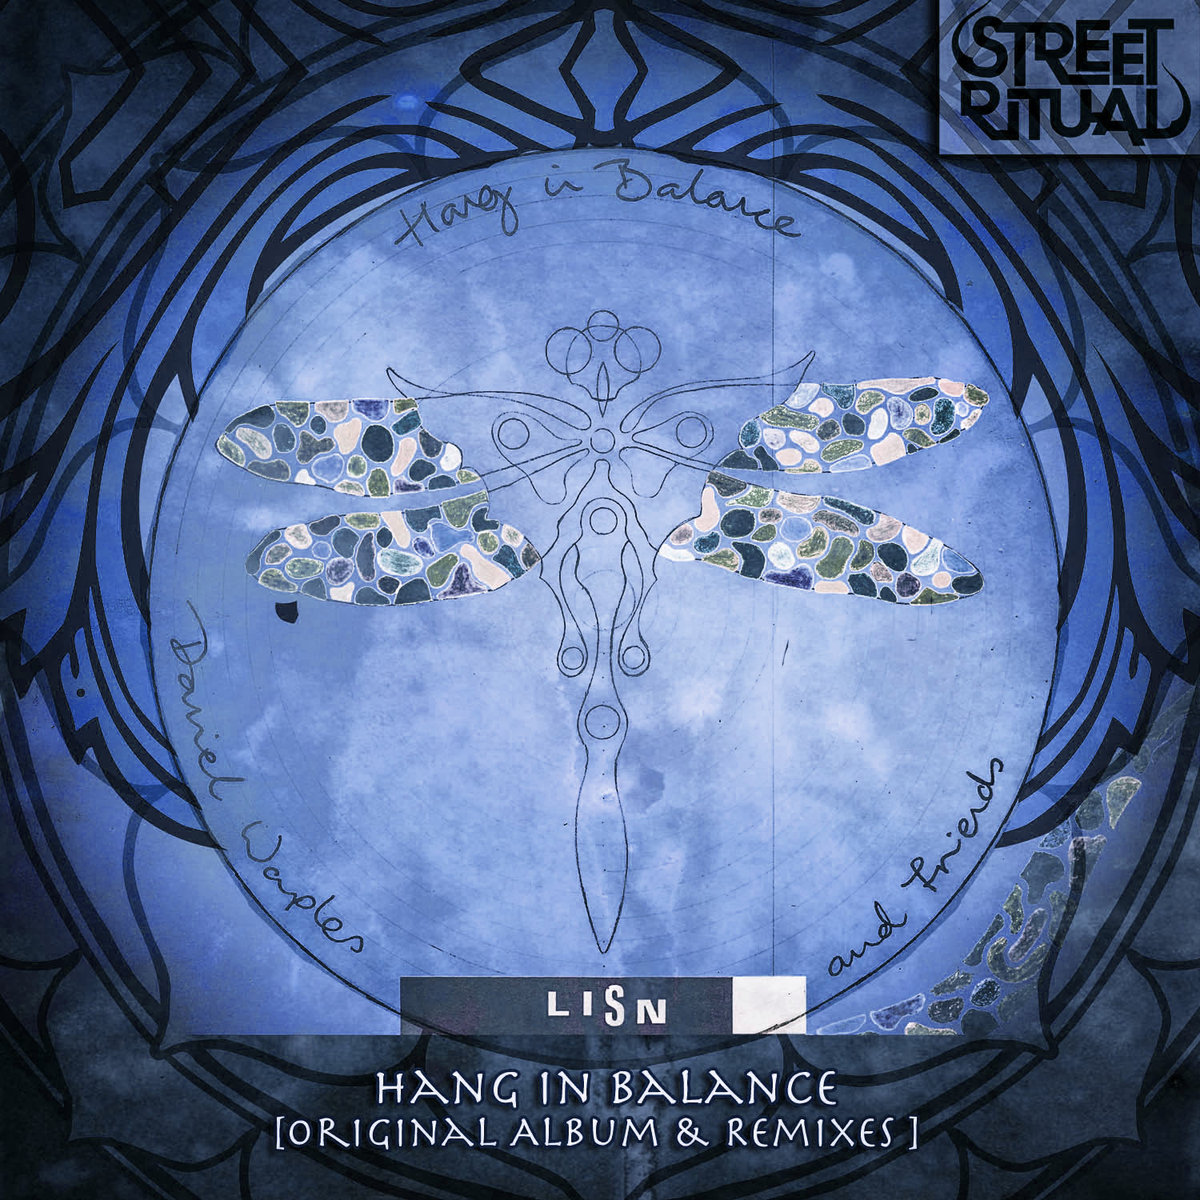 Hang in Balance - Petit Son @ 'Lisn (Remixes & Originals)' album (bass, daniel waples)